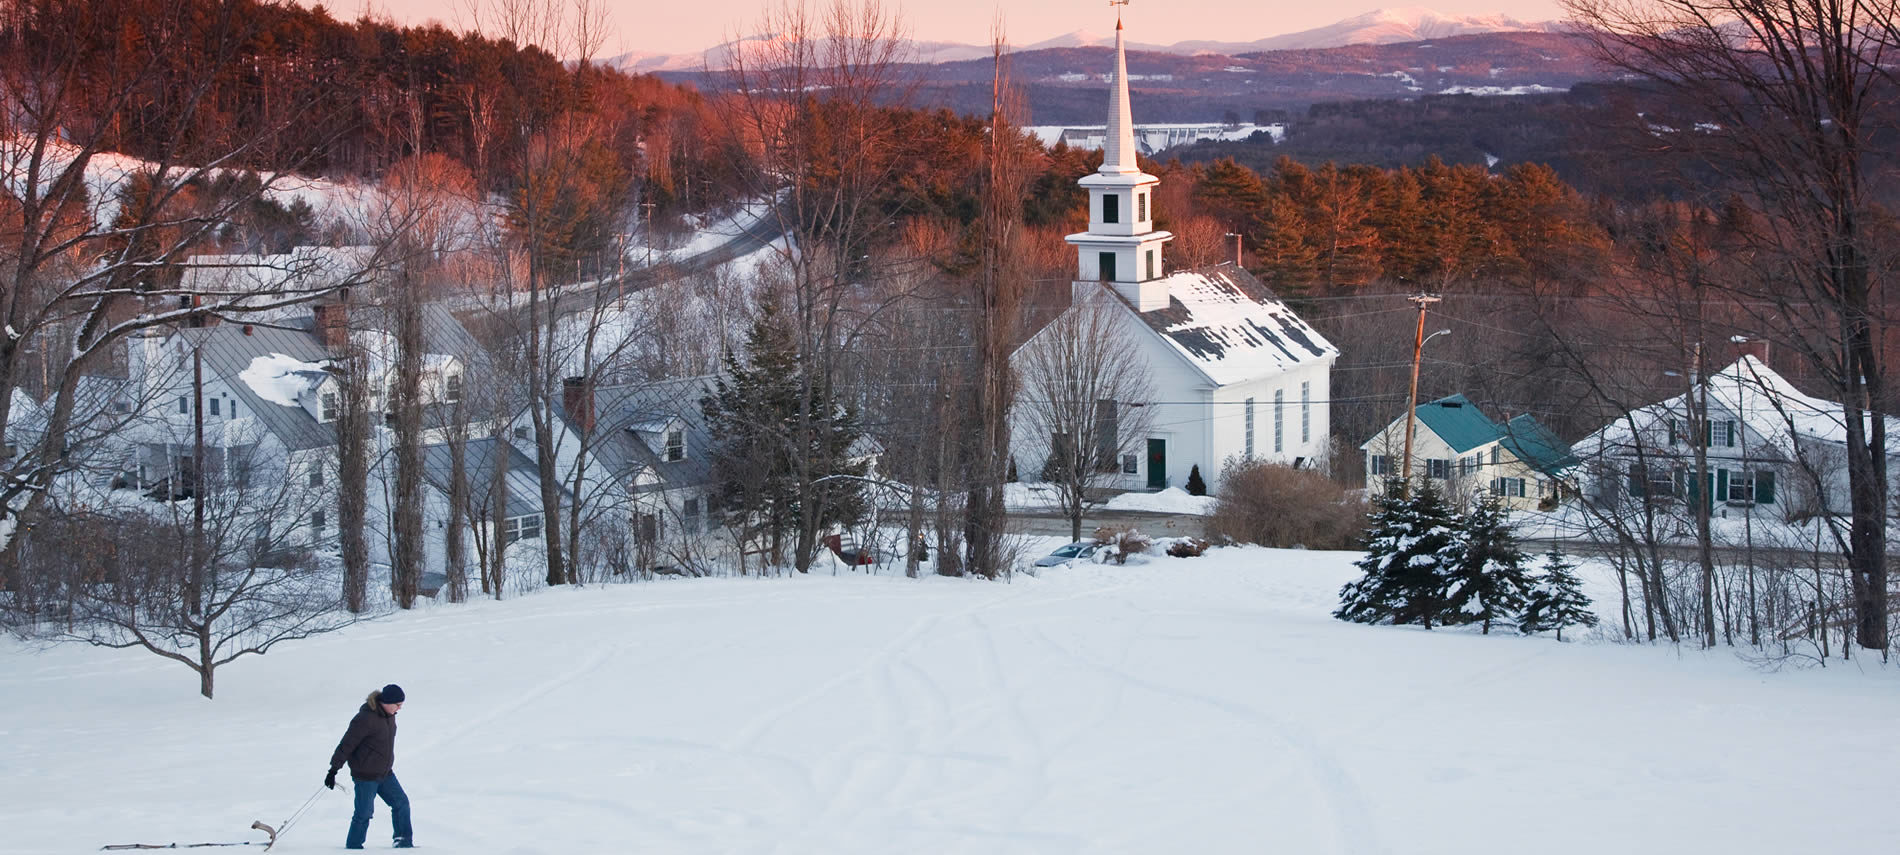 snow covered image of Waterford Village and white steeple church, with a man dragging a sled across the snow